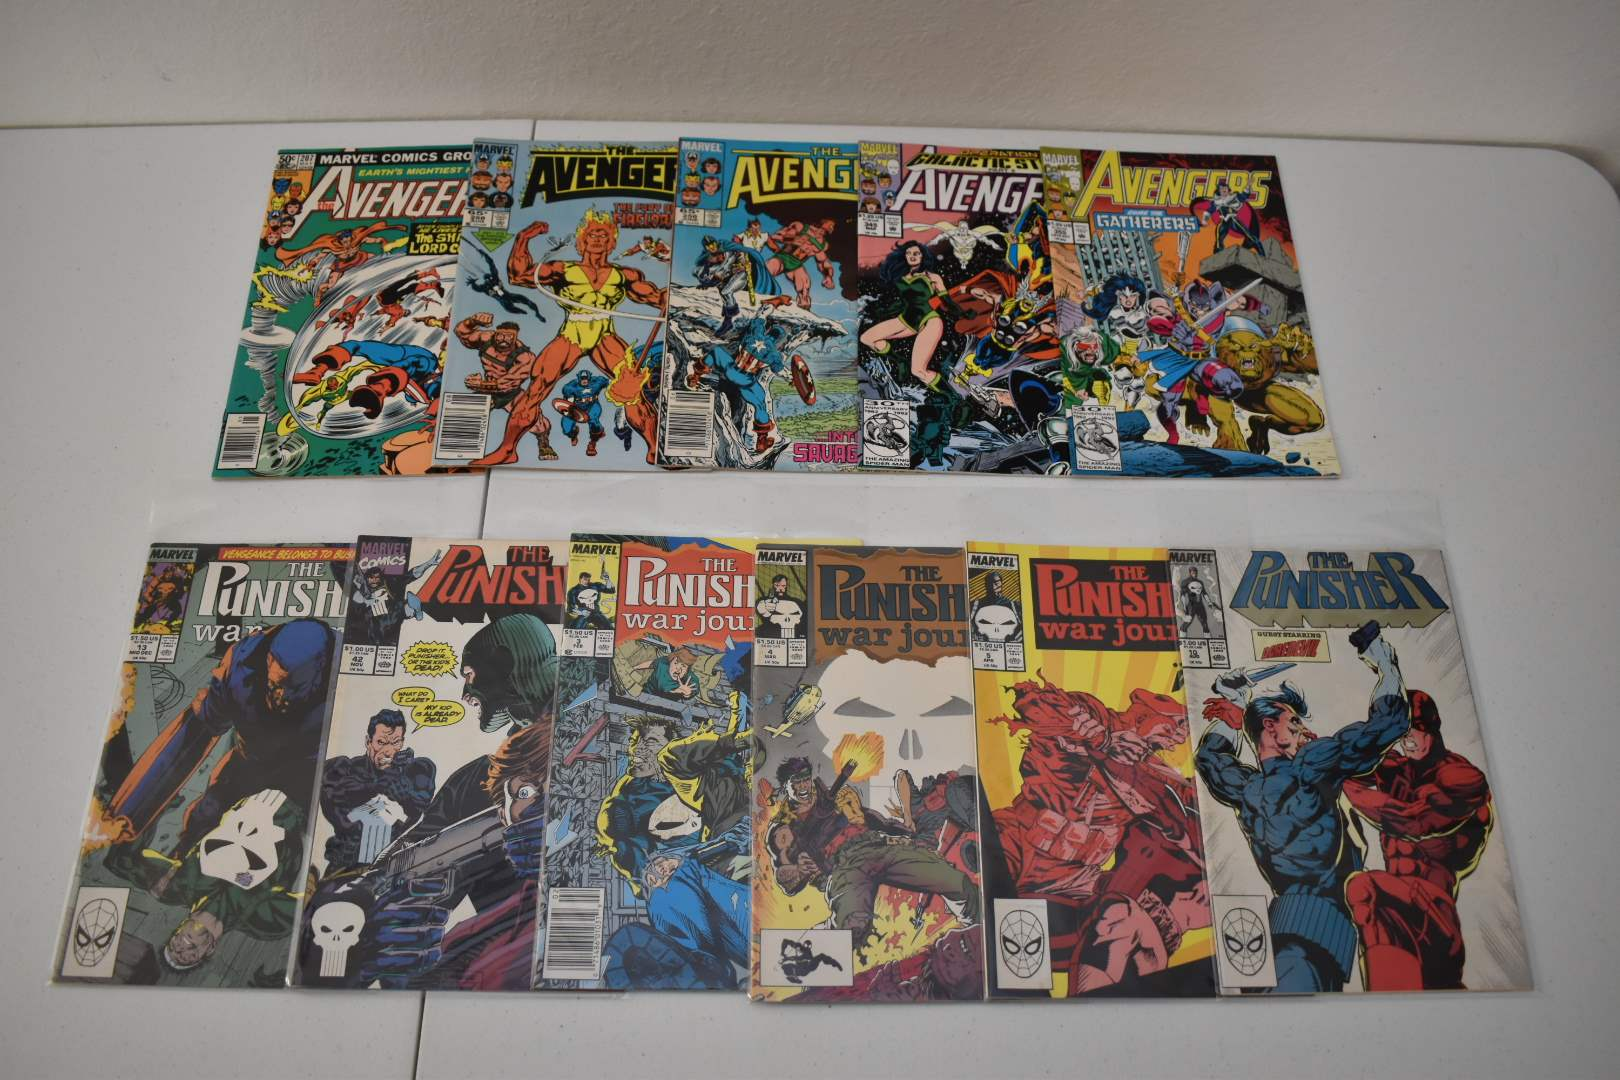 1990's Punisher and Avengers